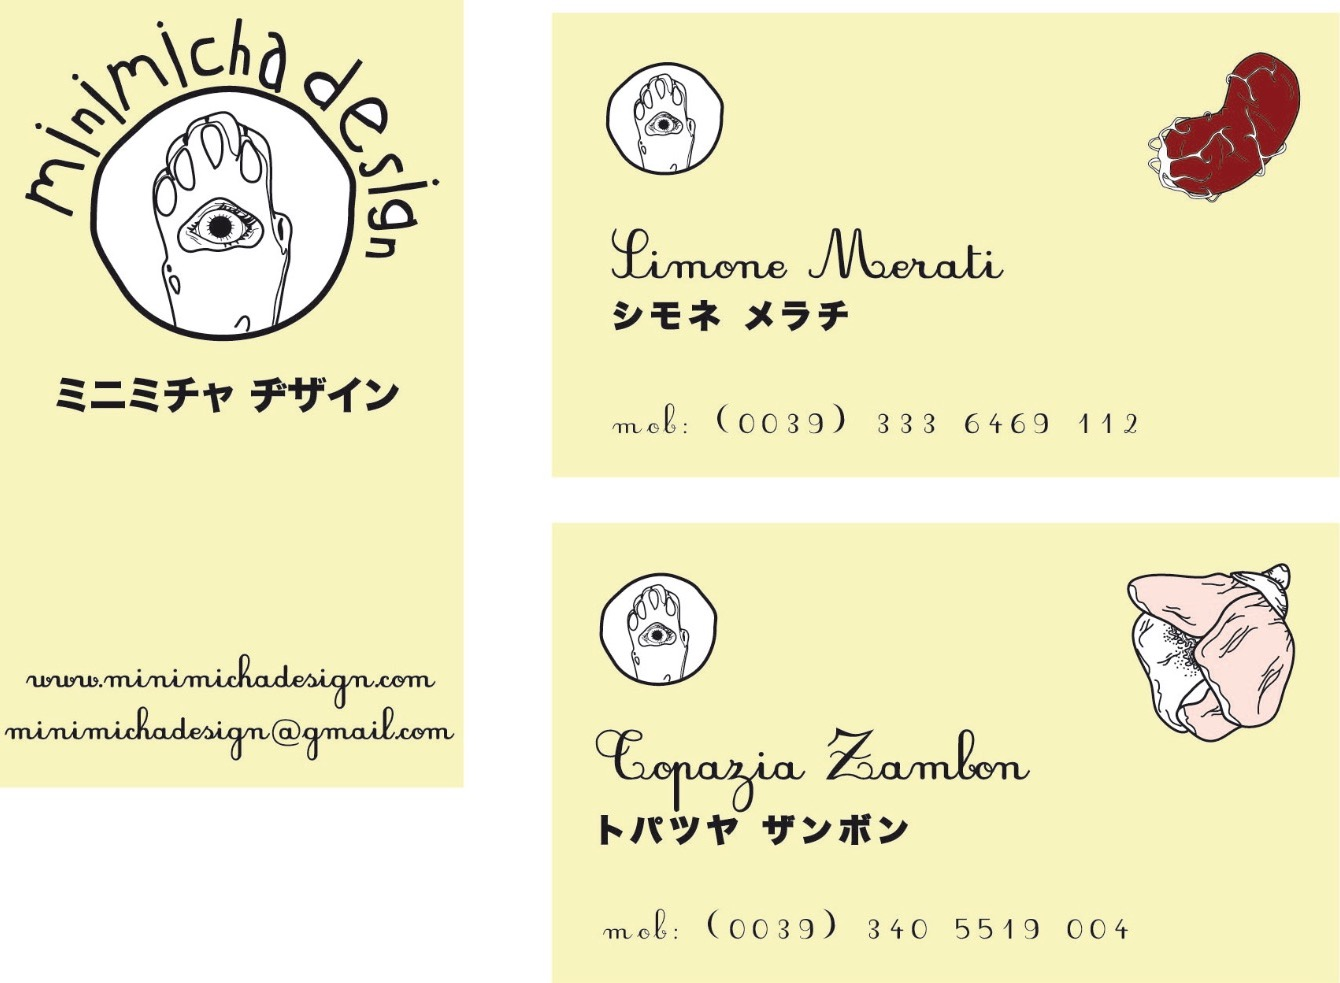 minimicha business card